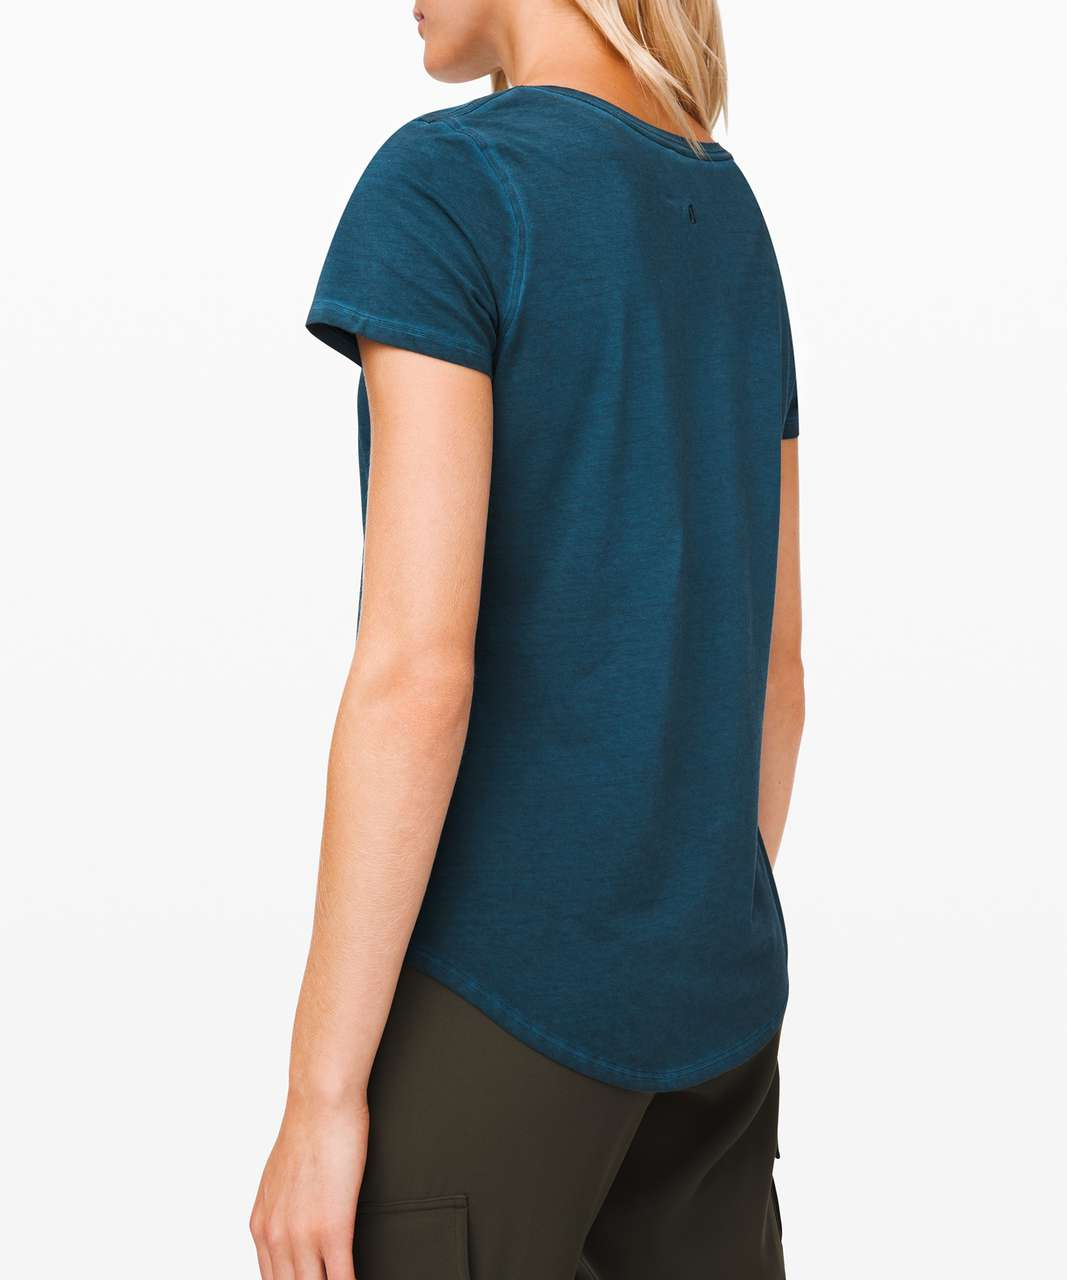 Lululemon Love Crew *Fade - Washed Night Diver